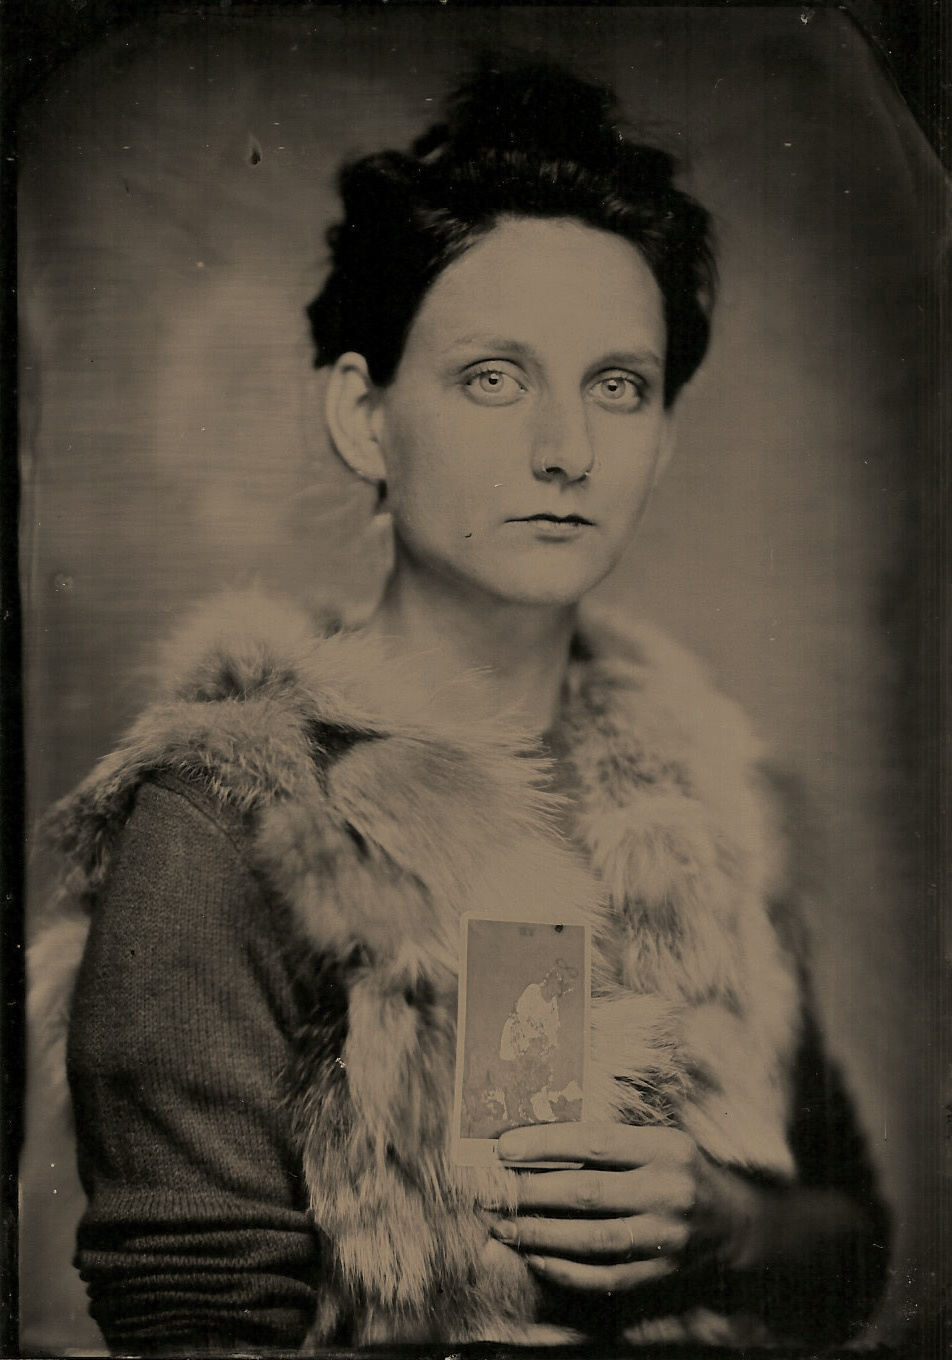 tintype by Margaret Muza, Milwaukee WI